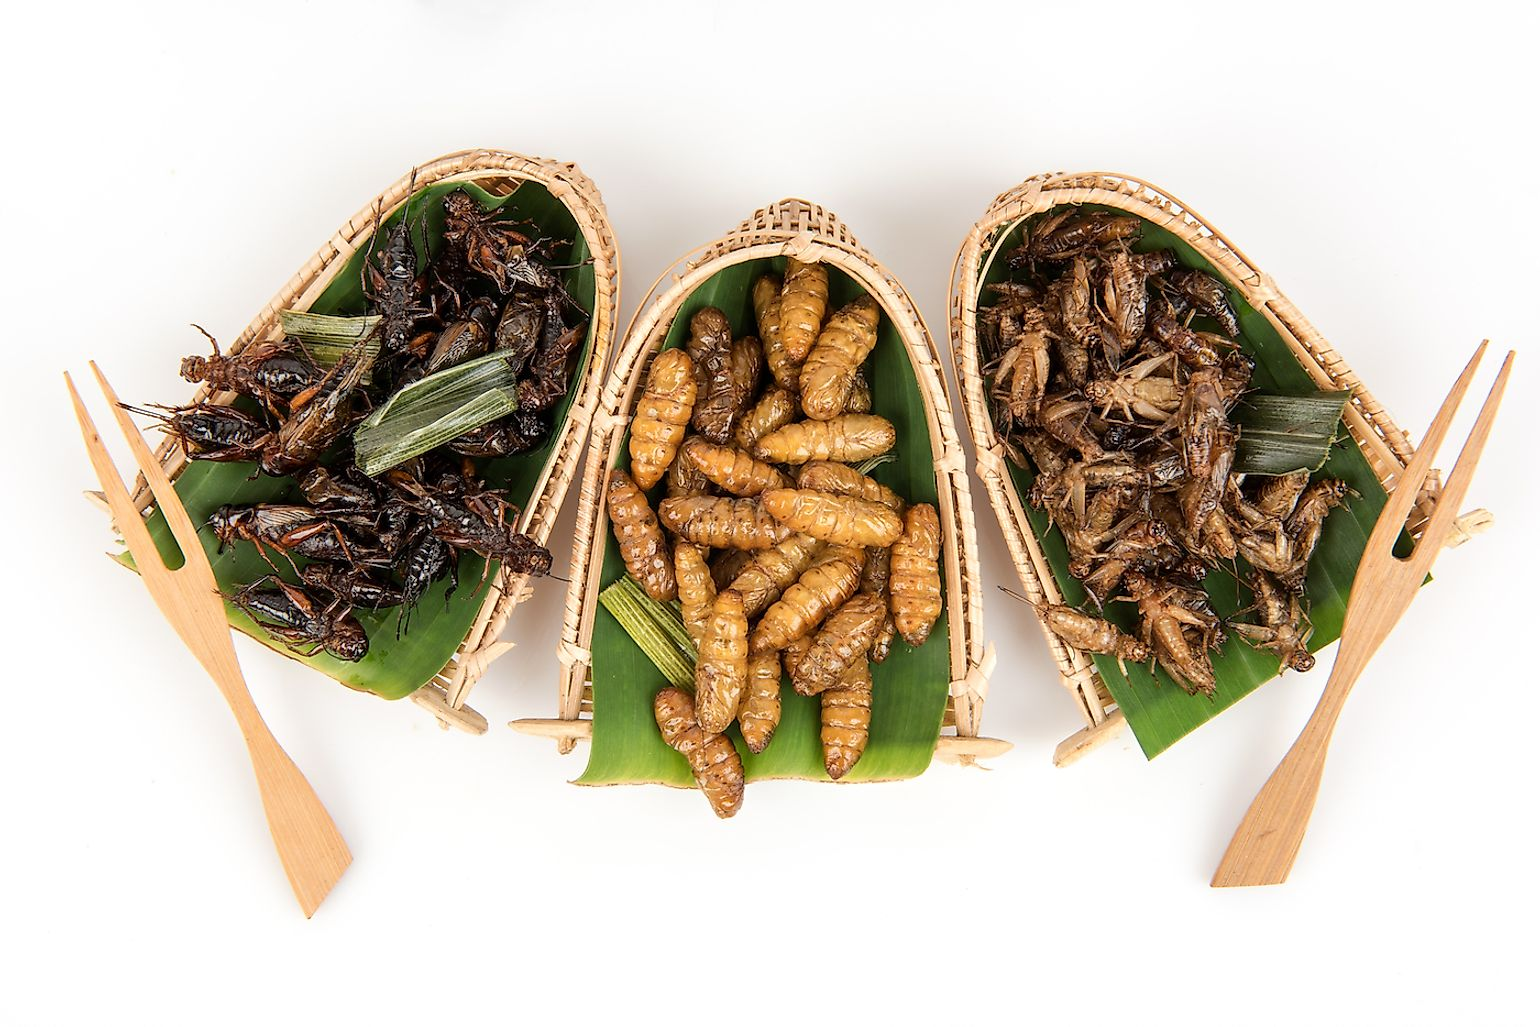 Friend insect snacks in Thailand. Image credit: Wasanajai/Shutterstock.com